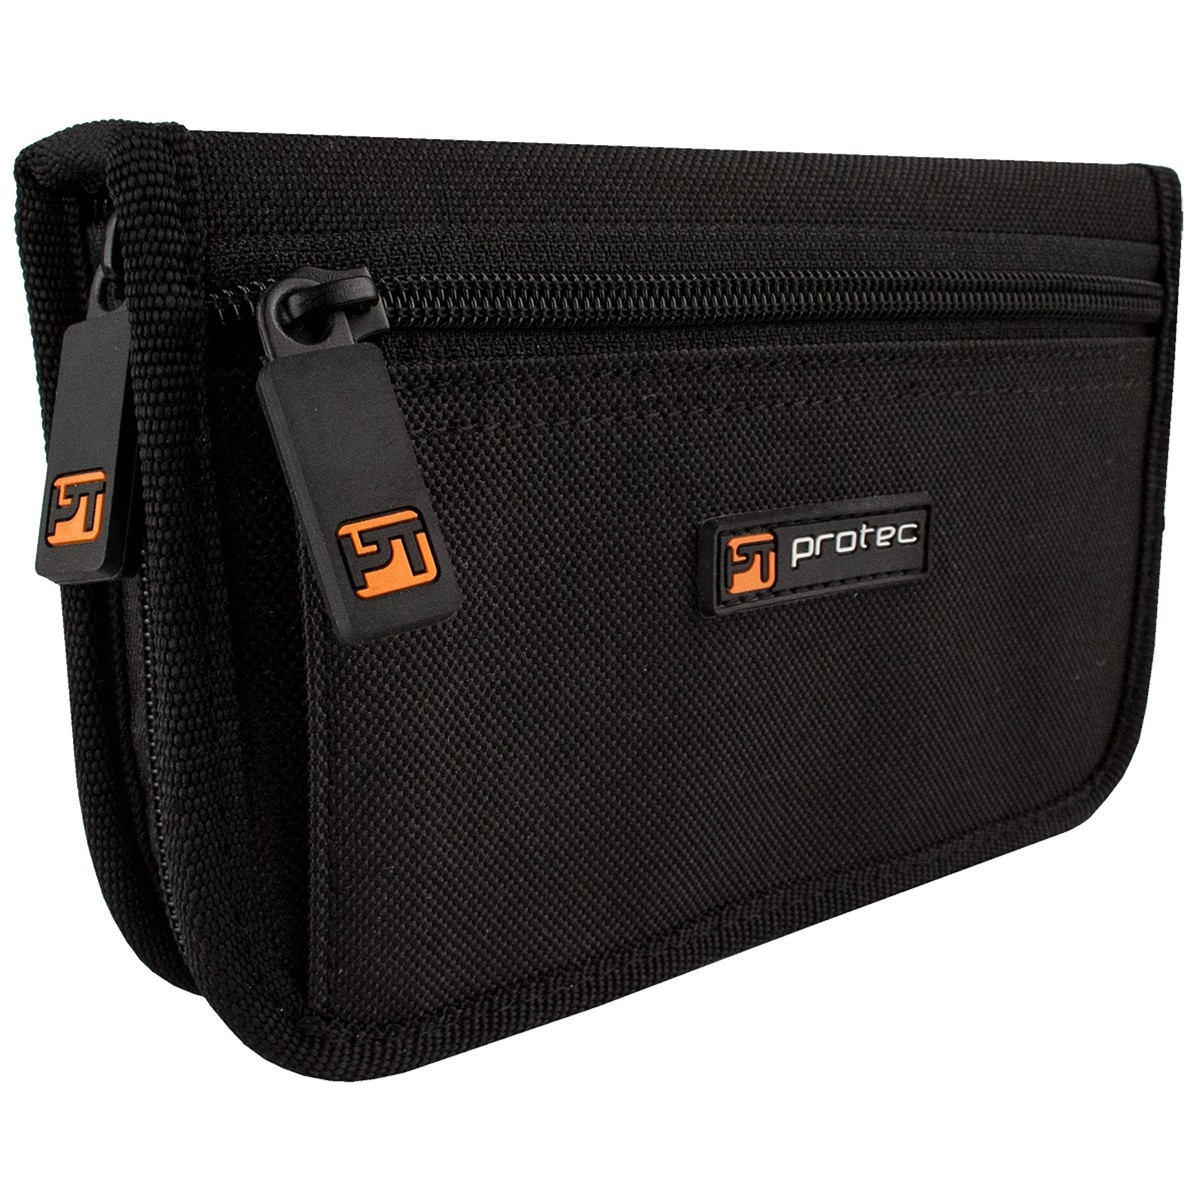 Protec Trumpet / Small Brass Mouthpiece Pouch (A221ZIP)